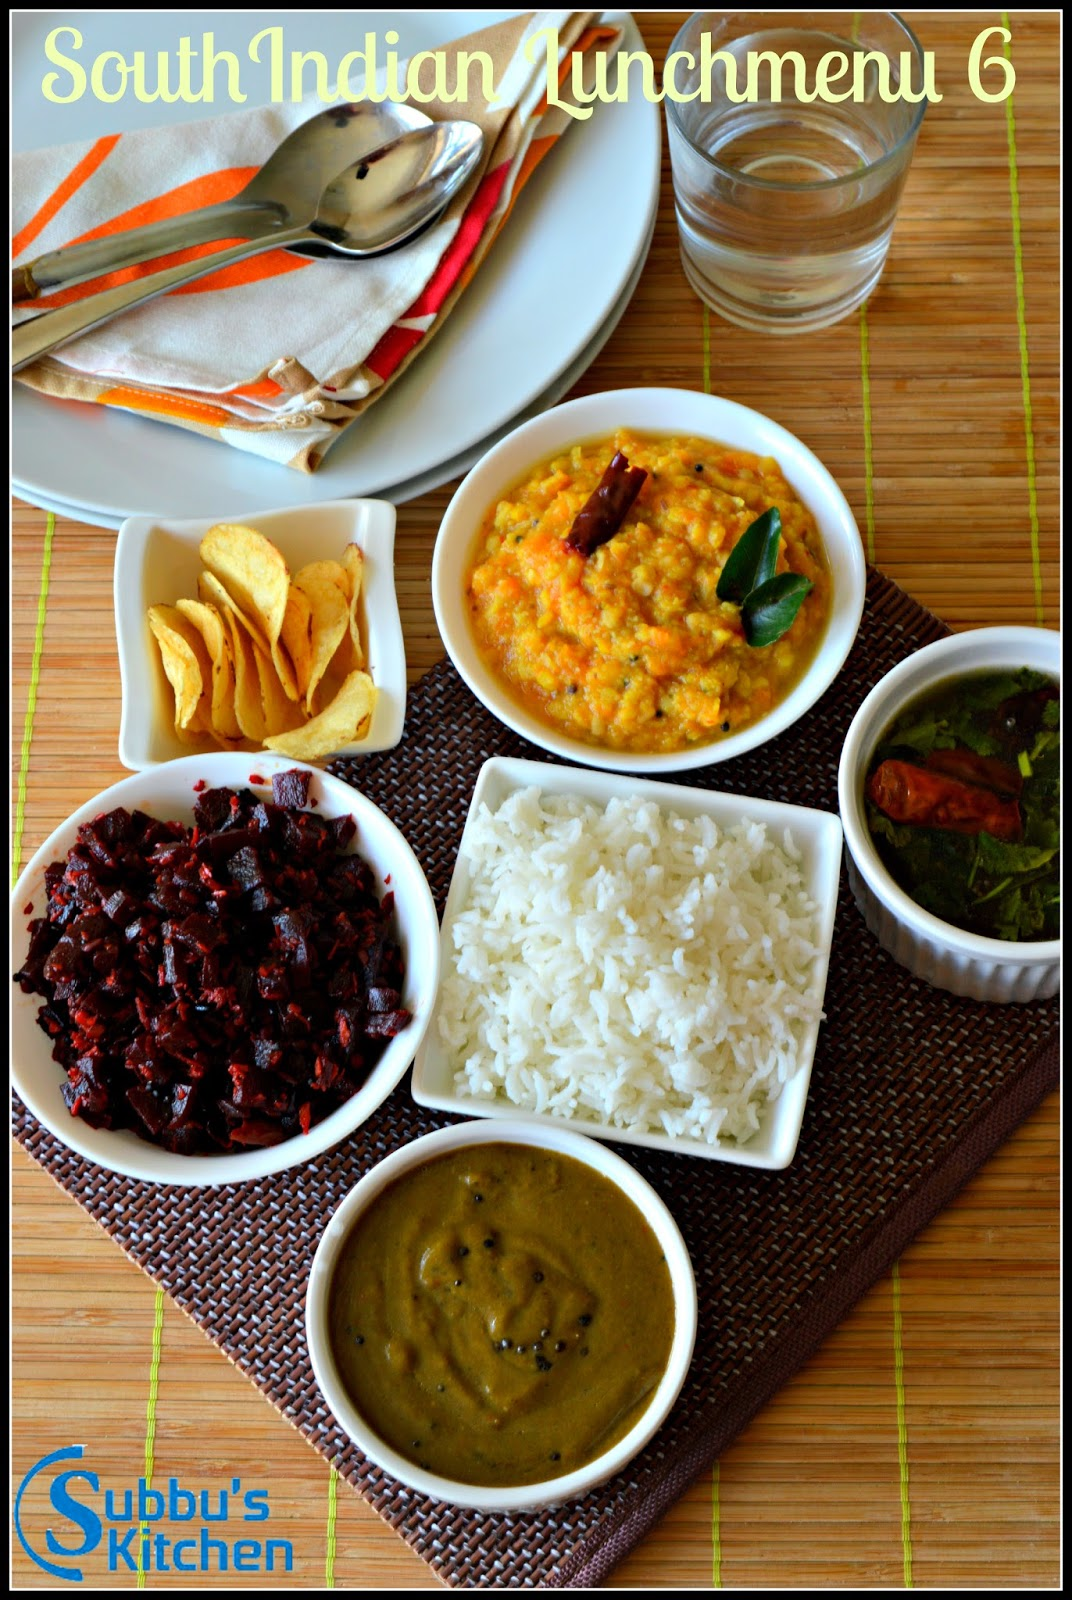 South Indian Lunch Menu 6 - Curryleaves Kuzhambu, Kottu Rasam, Beetroot Poriyal, Pumpkin Kootu